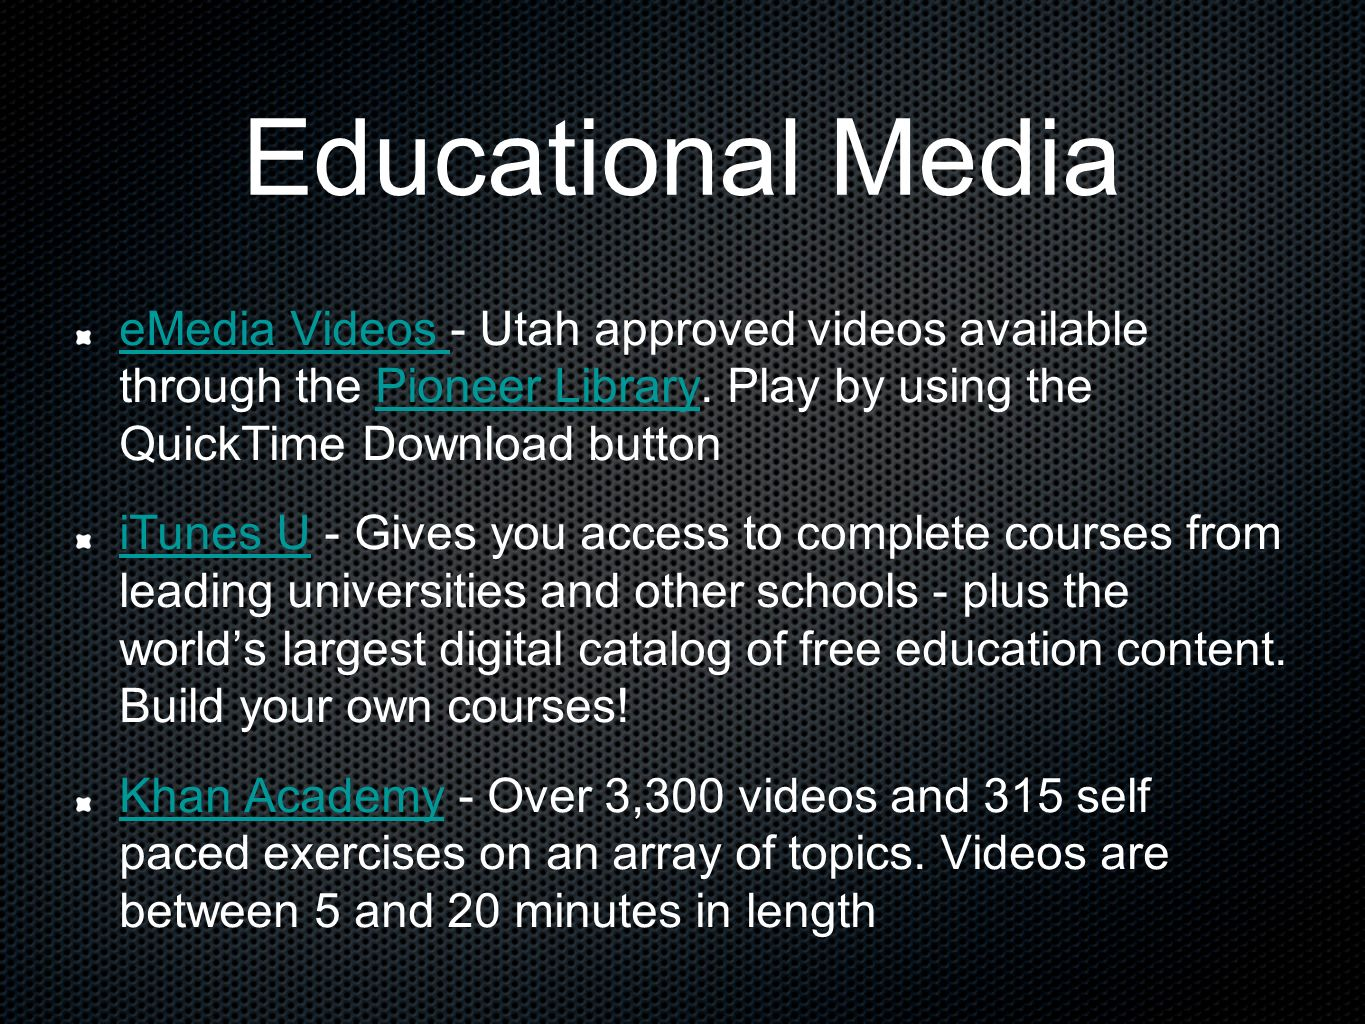 Educational Media eMedia Videos - Utah approved videos available through the Pioneer Library. Play by using the QuickTime Download button.